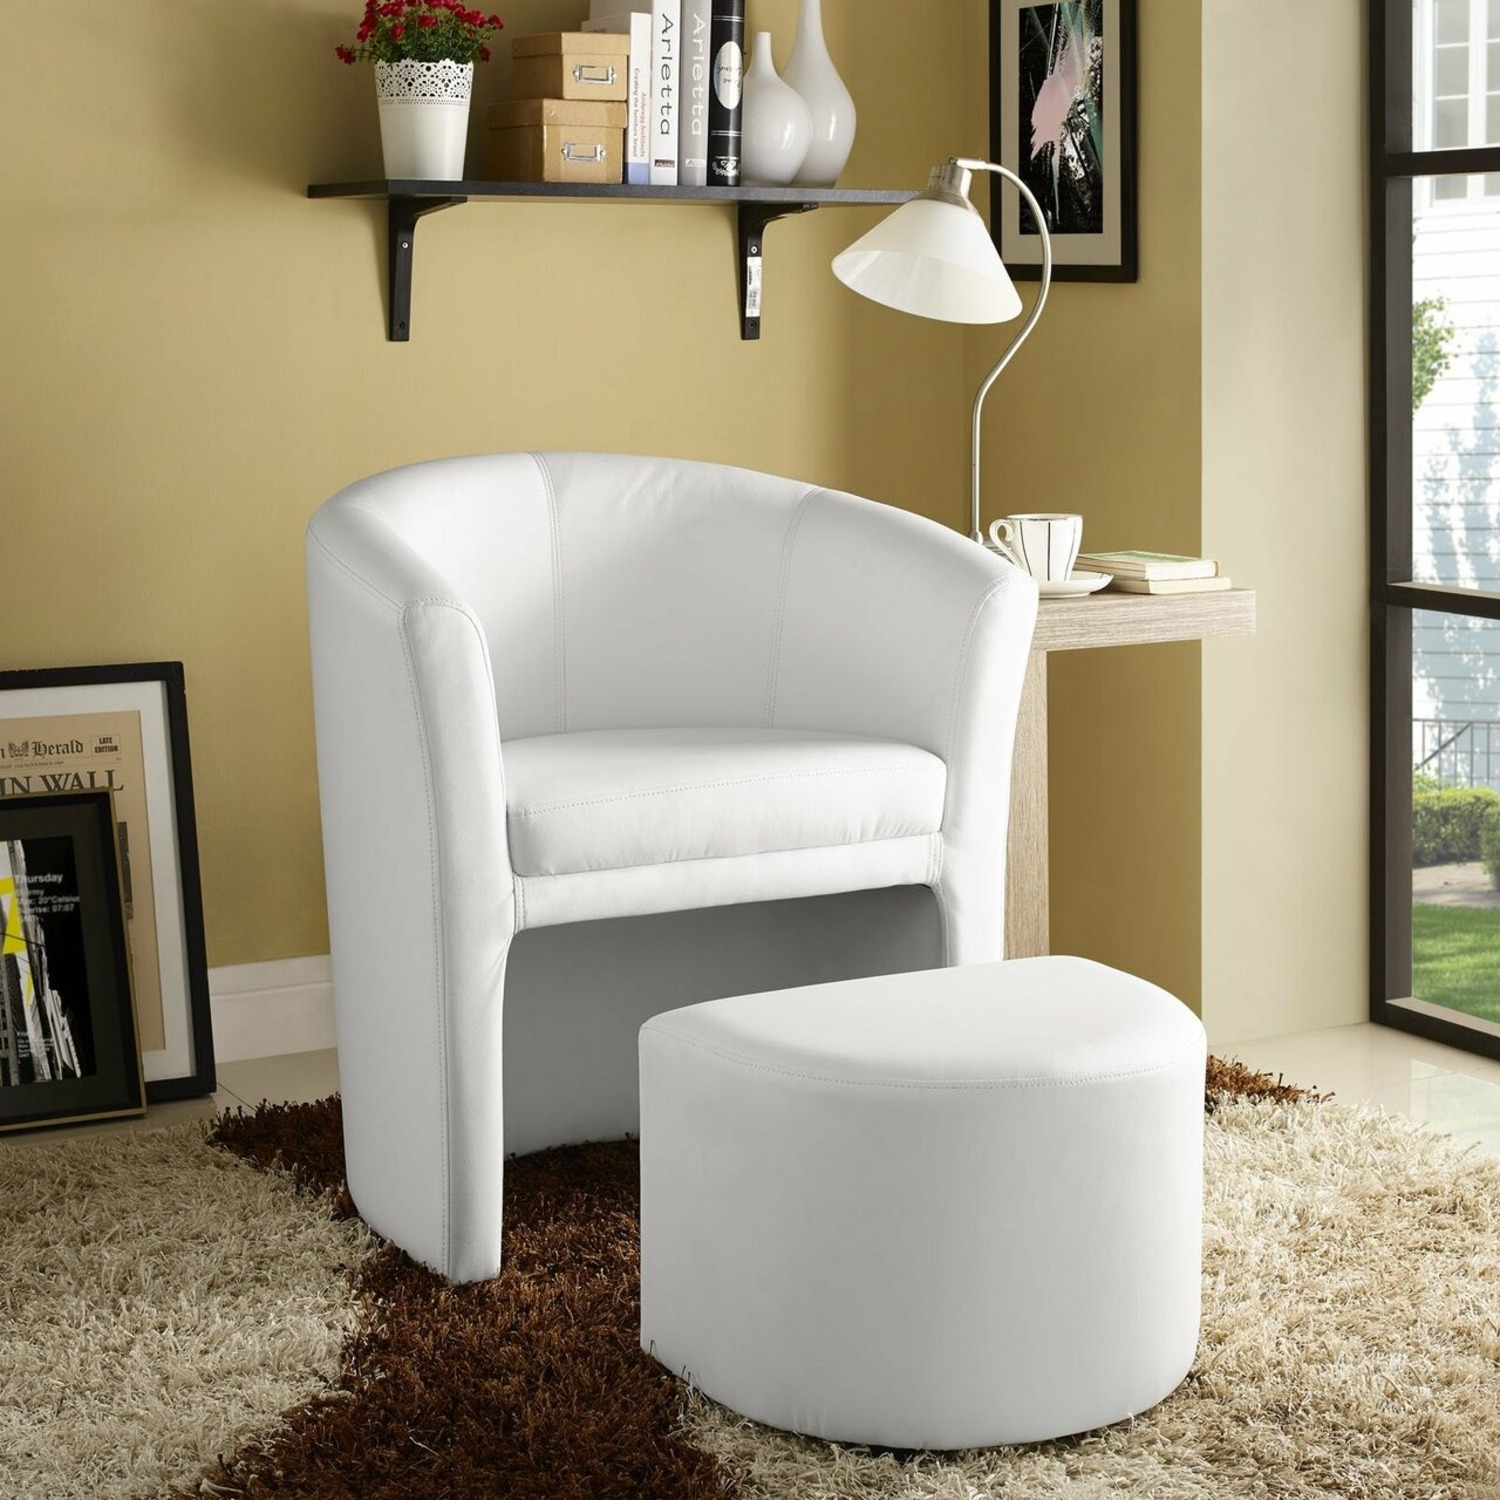 Armchair & Ottoman In White Color Upholstery - image-4